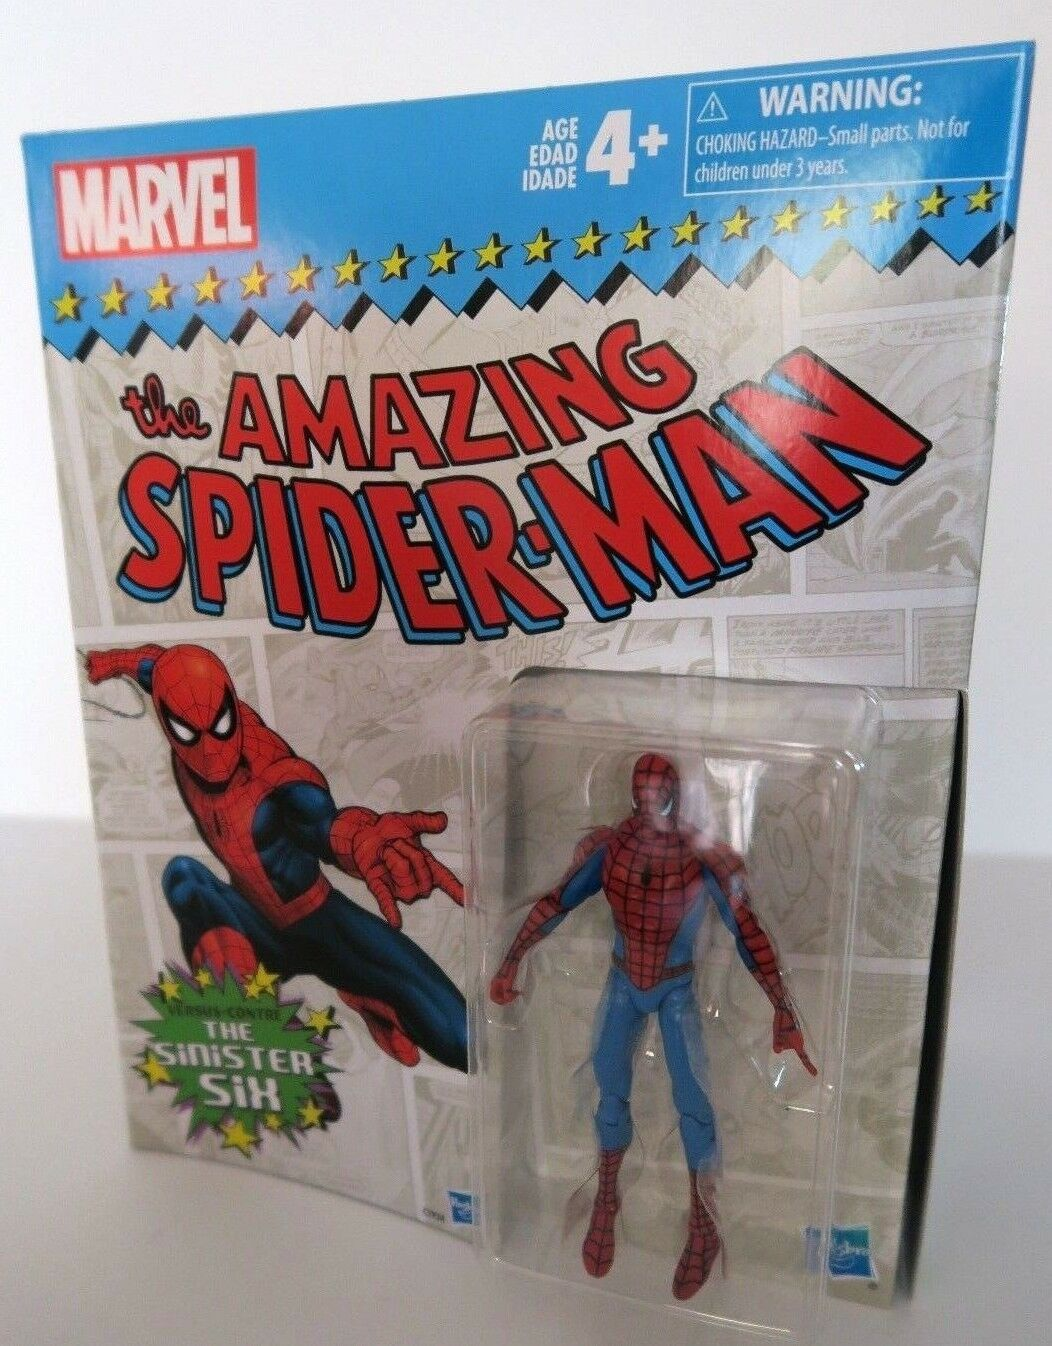 Marvel - legenden  spiderman - vs finstere sechs amazon exklusive box 3,75